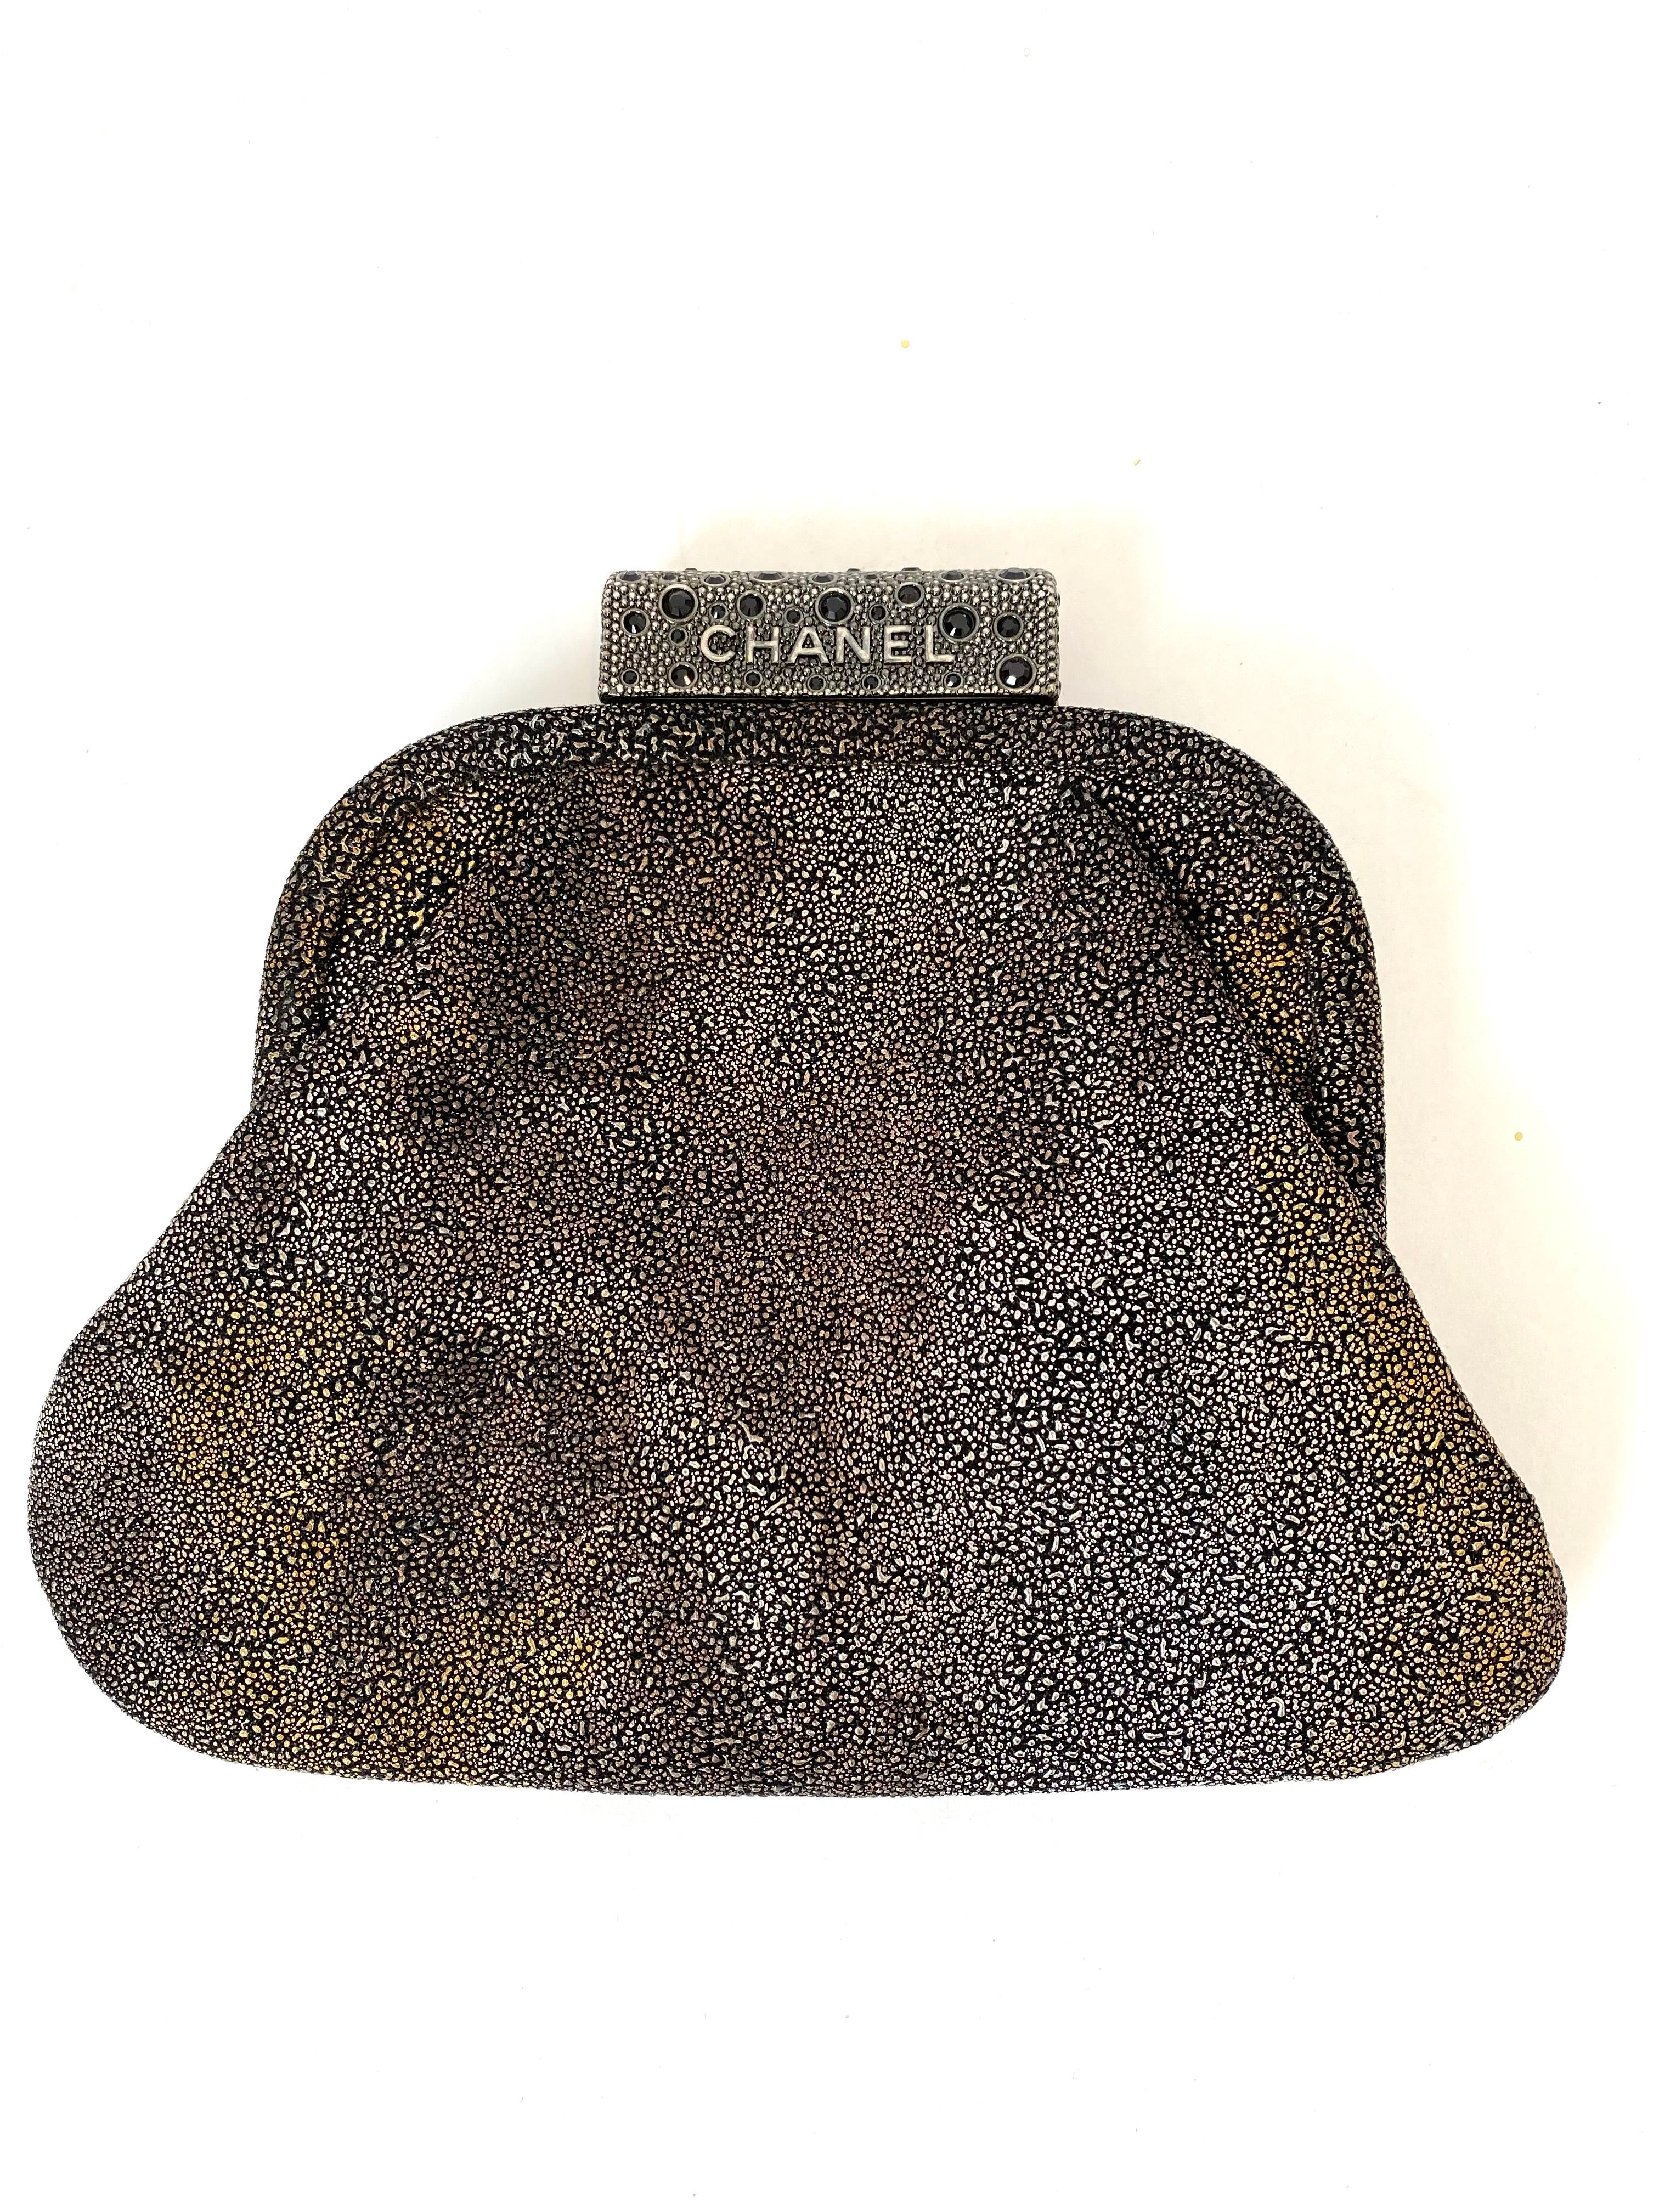 Chanel Shagreen Frame Clutch Bag